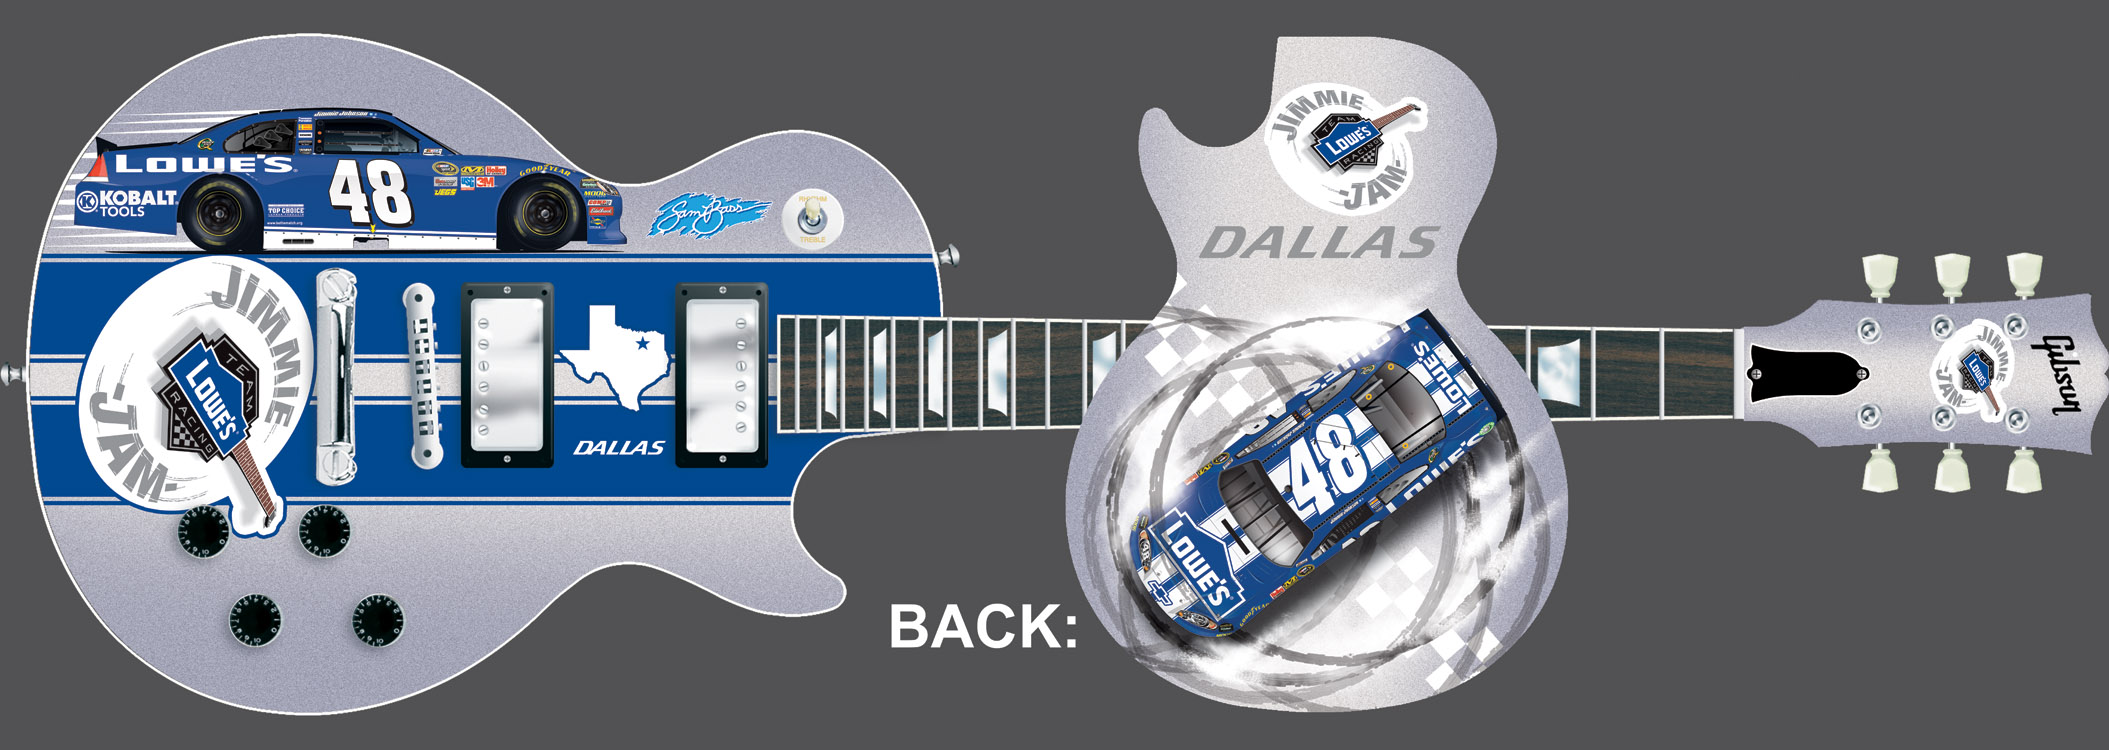 2012 Jimmie Jam Dallas Guitar